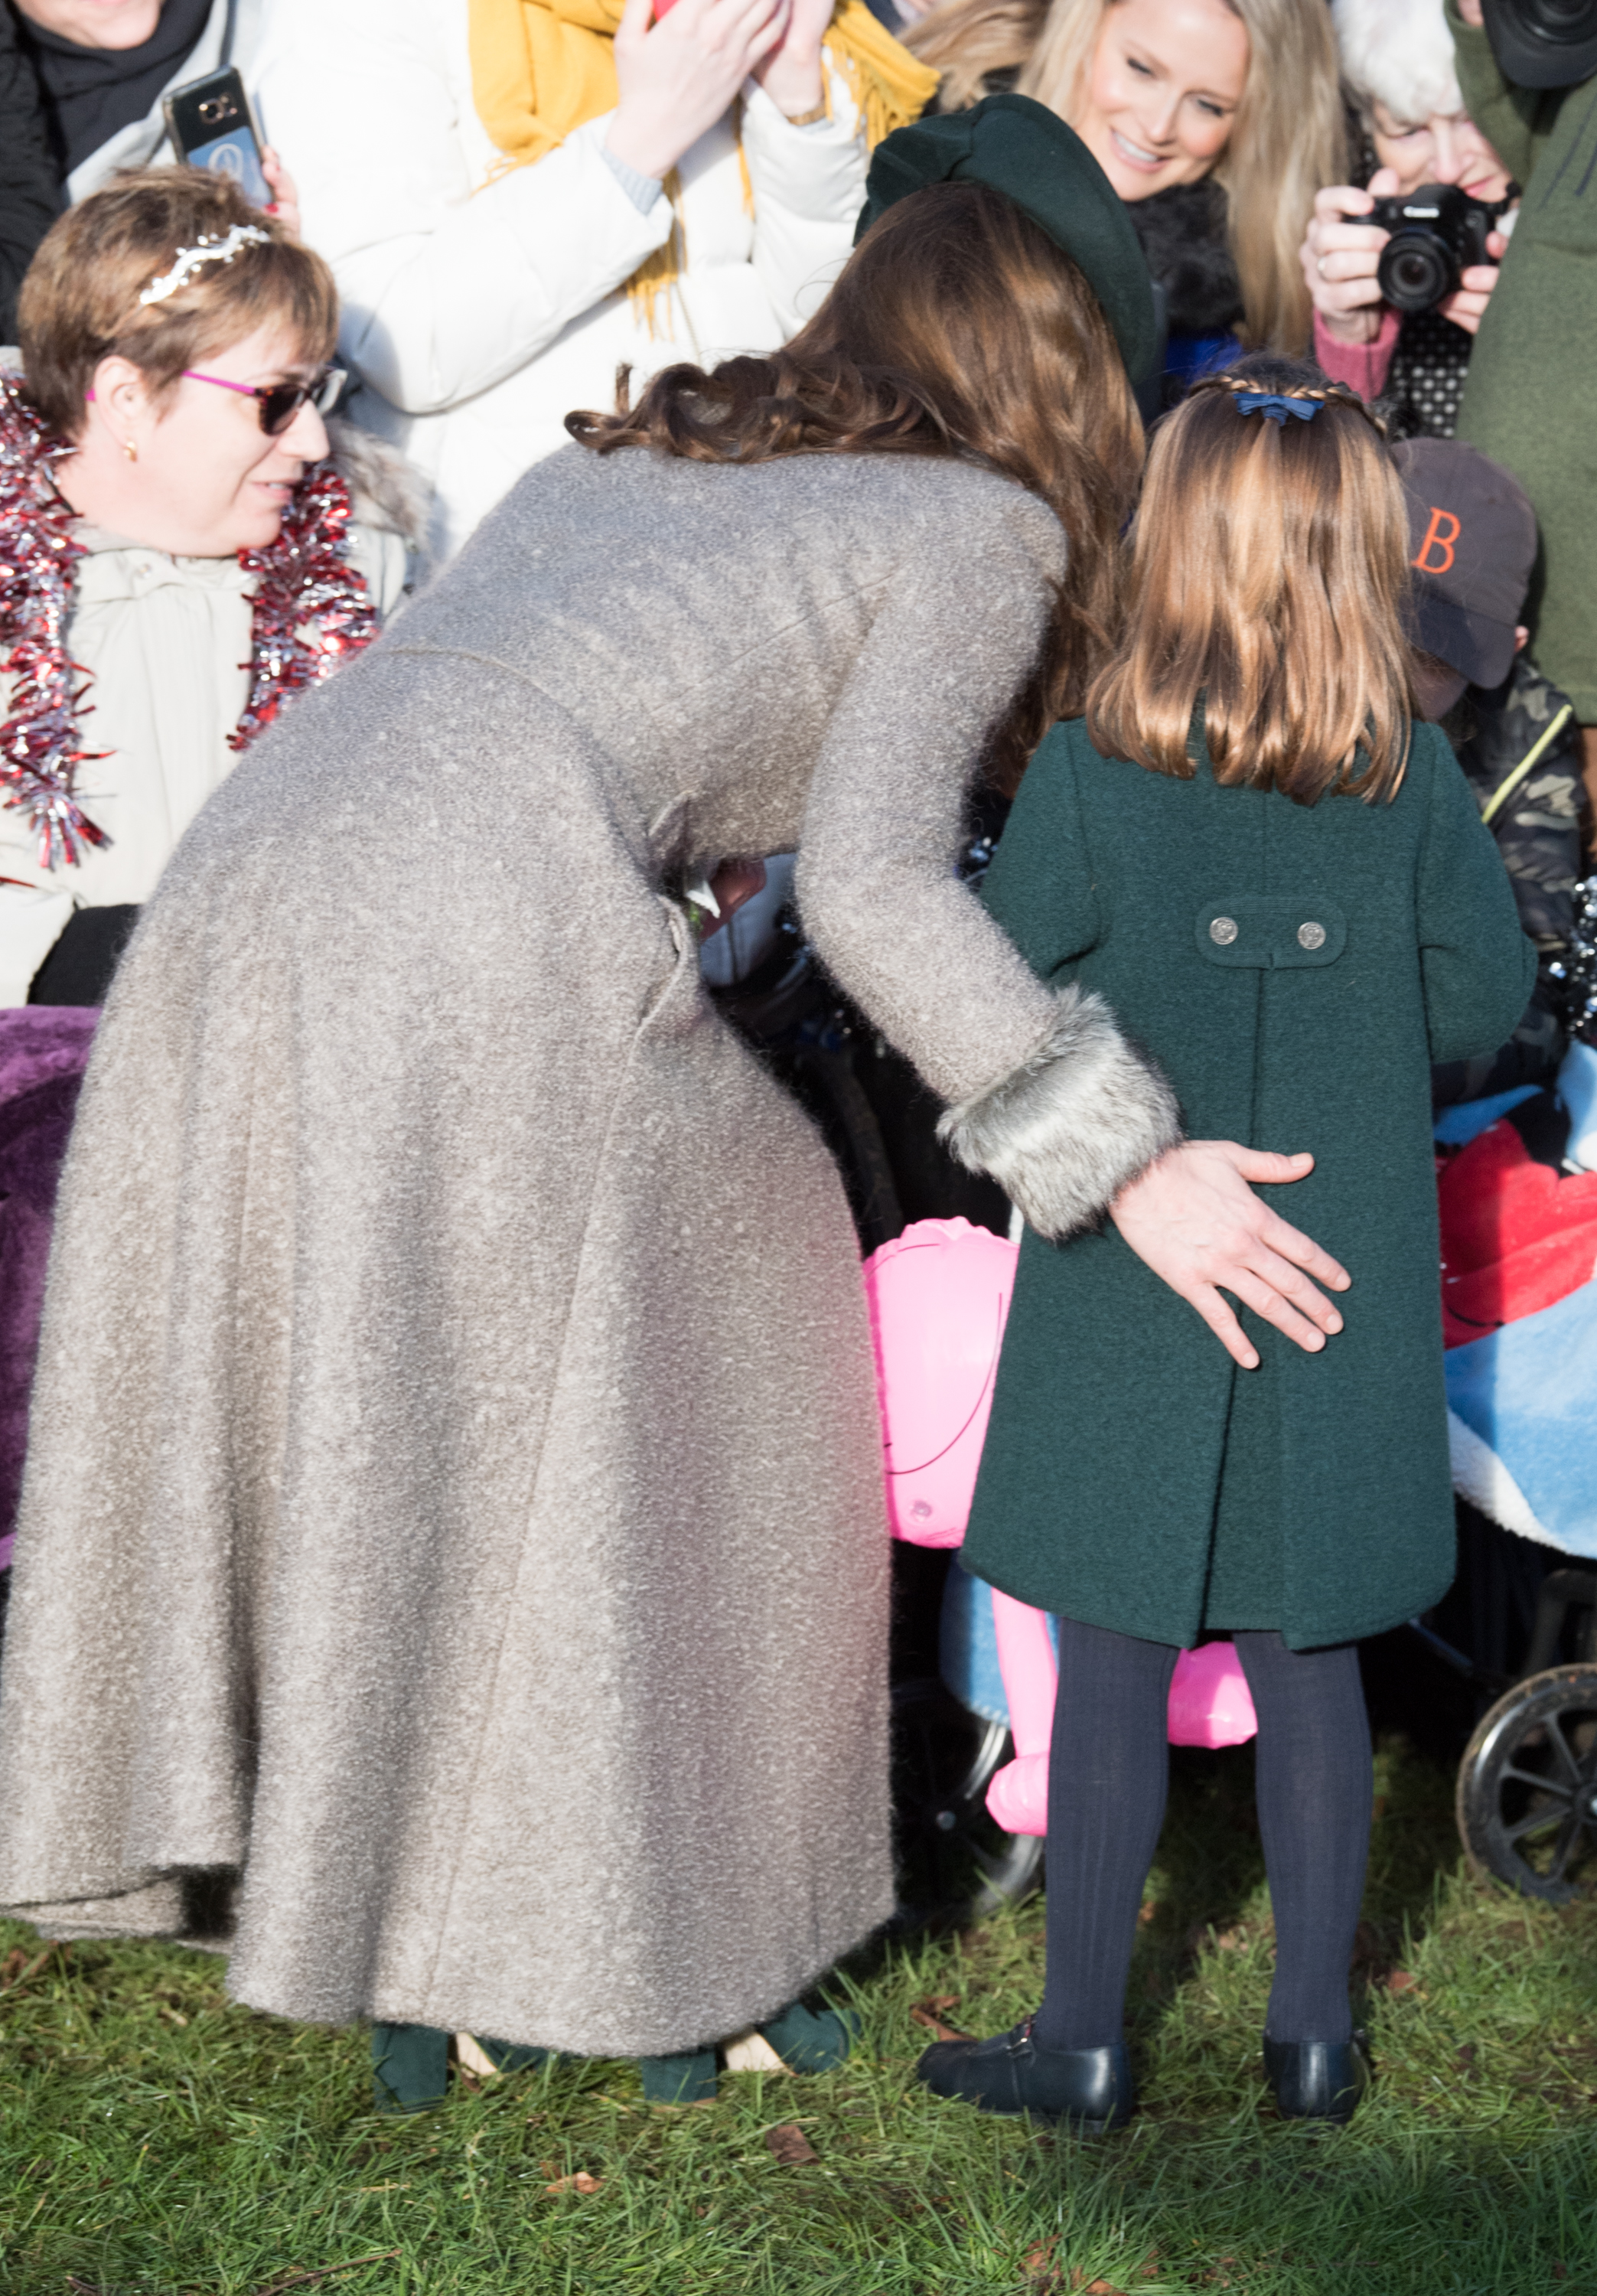 KING'S LYNN, ENGLAND - DECEMBER 25: Catherine, Duchess of Cambridge and Princess Charlotte of Cambridge attend the Christmas Day Church service at Church of St Mary Magdalene on the Sandringham estate on December 25, 2019 in King's Lynn, United Kingdom. (Photo by Pool/Samir Hussein/WireImage)